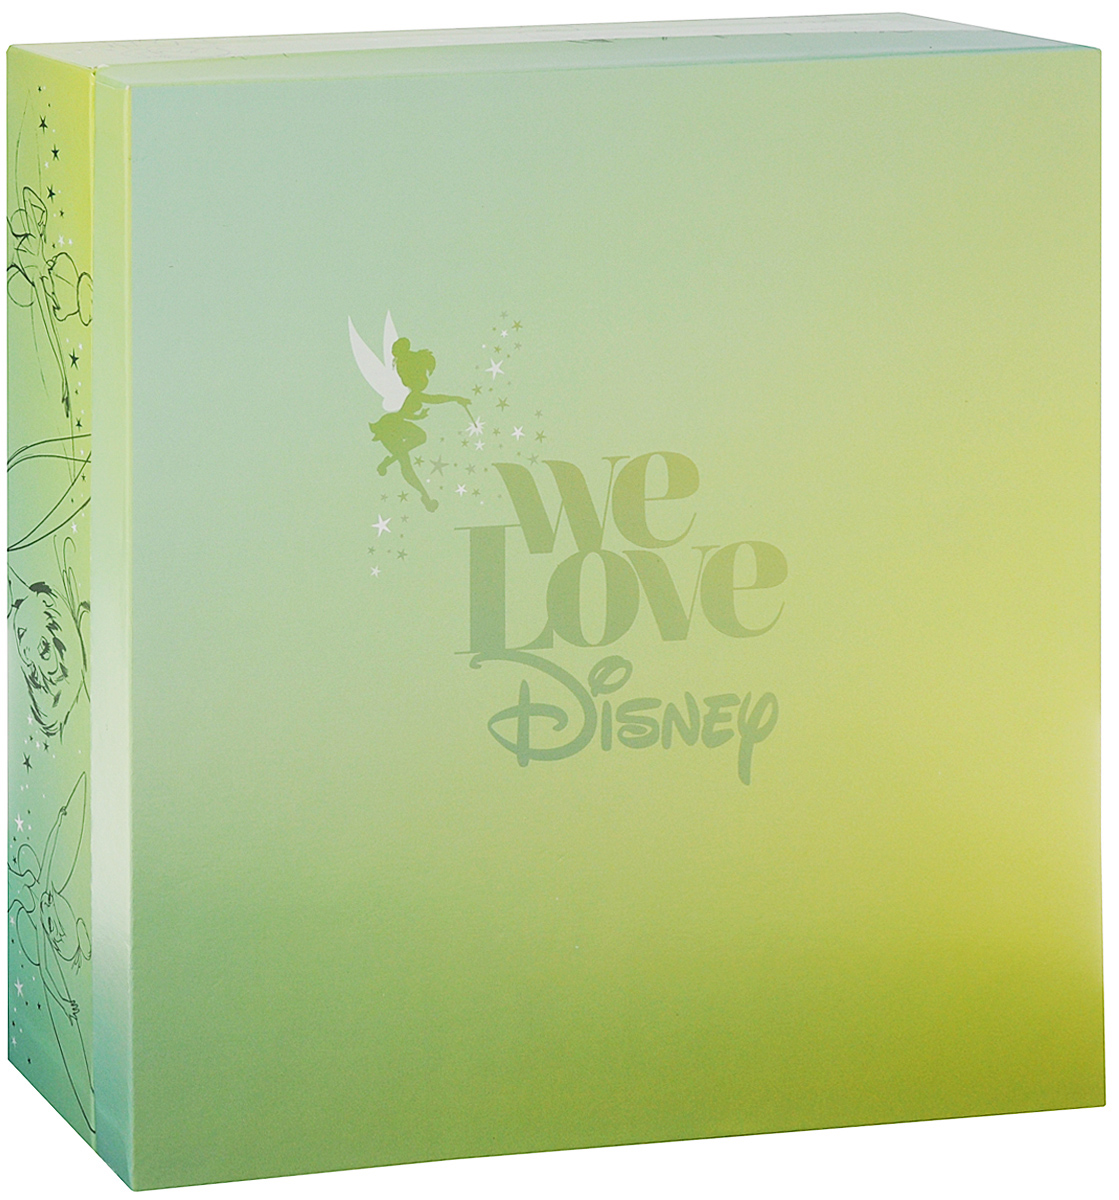 We Love Disney. Limited Edition (2 CD + DVD + 4 LP) new mf8 eitan s star icosaix radiolarian puzzle magic cube black and primary limited edition very challenging welcome to buy